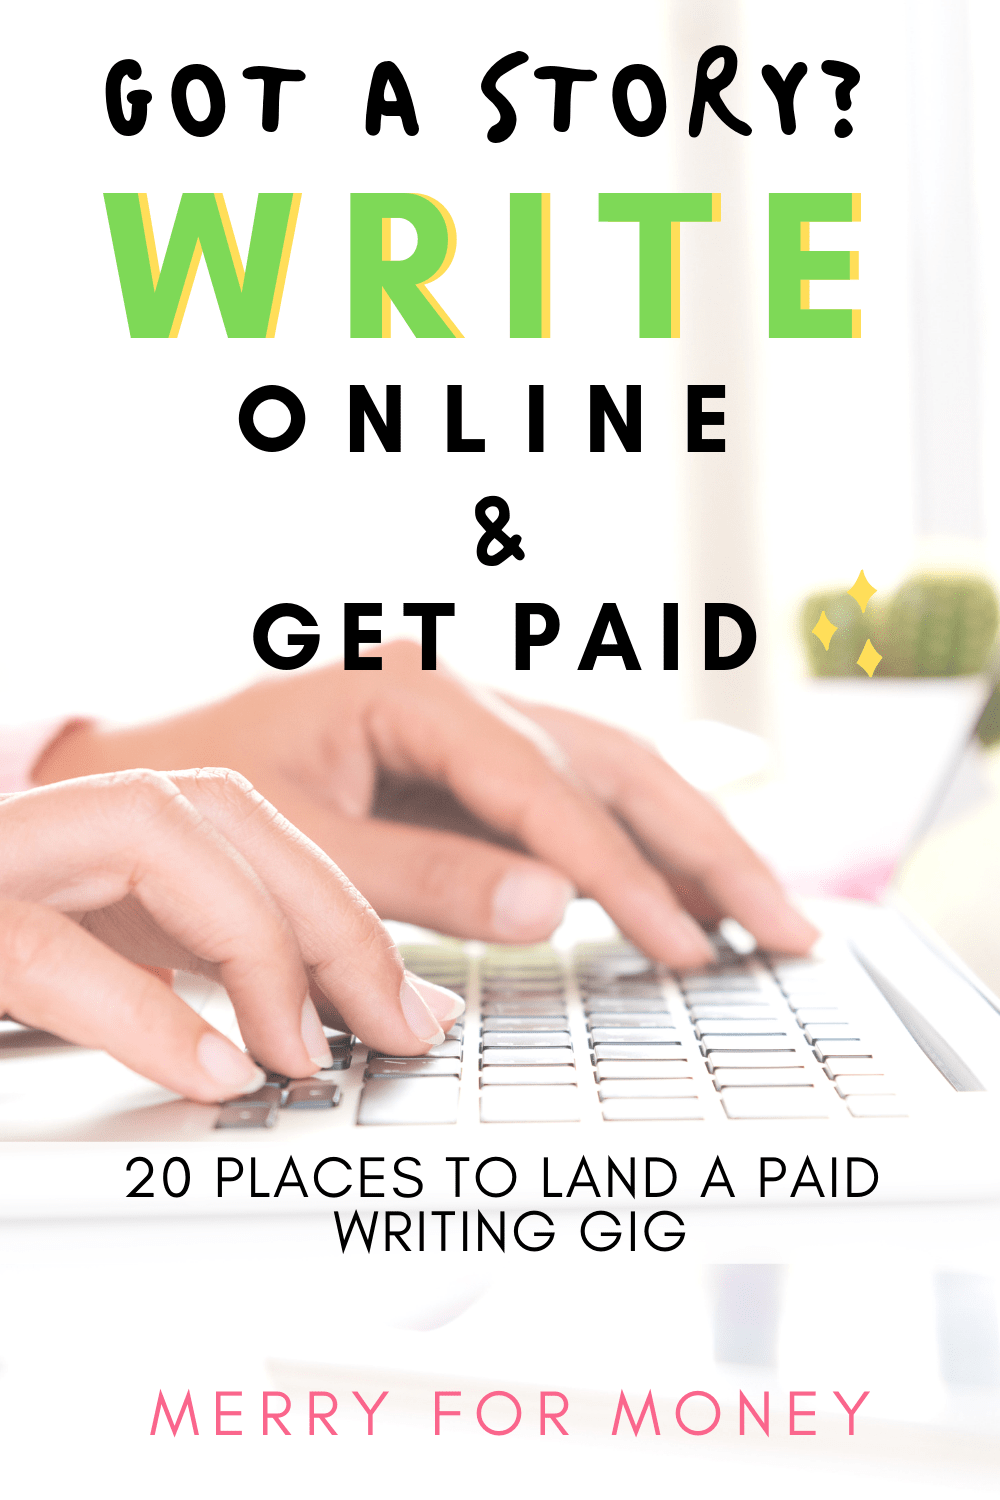 20 Freelance Writing Jobs Online For Beginners Work From Home On Sites That Pay Online Writing Jobs Writing Jobs Freelance Writing Jobs